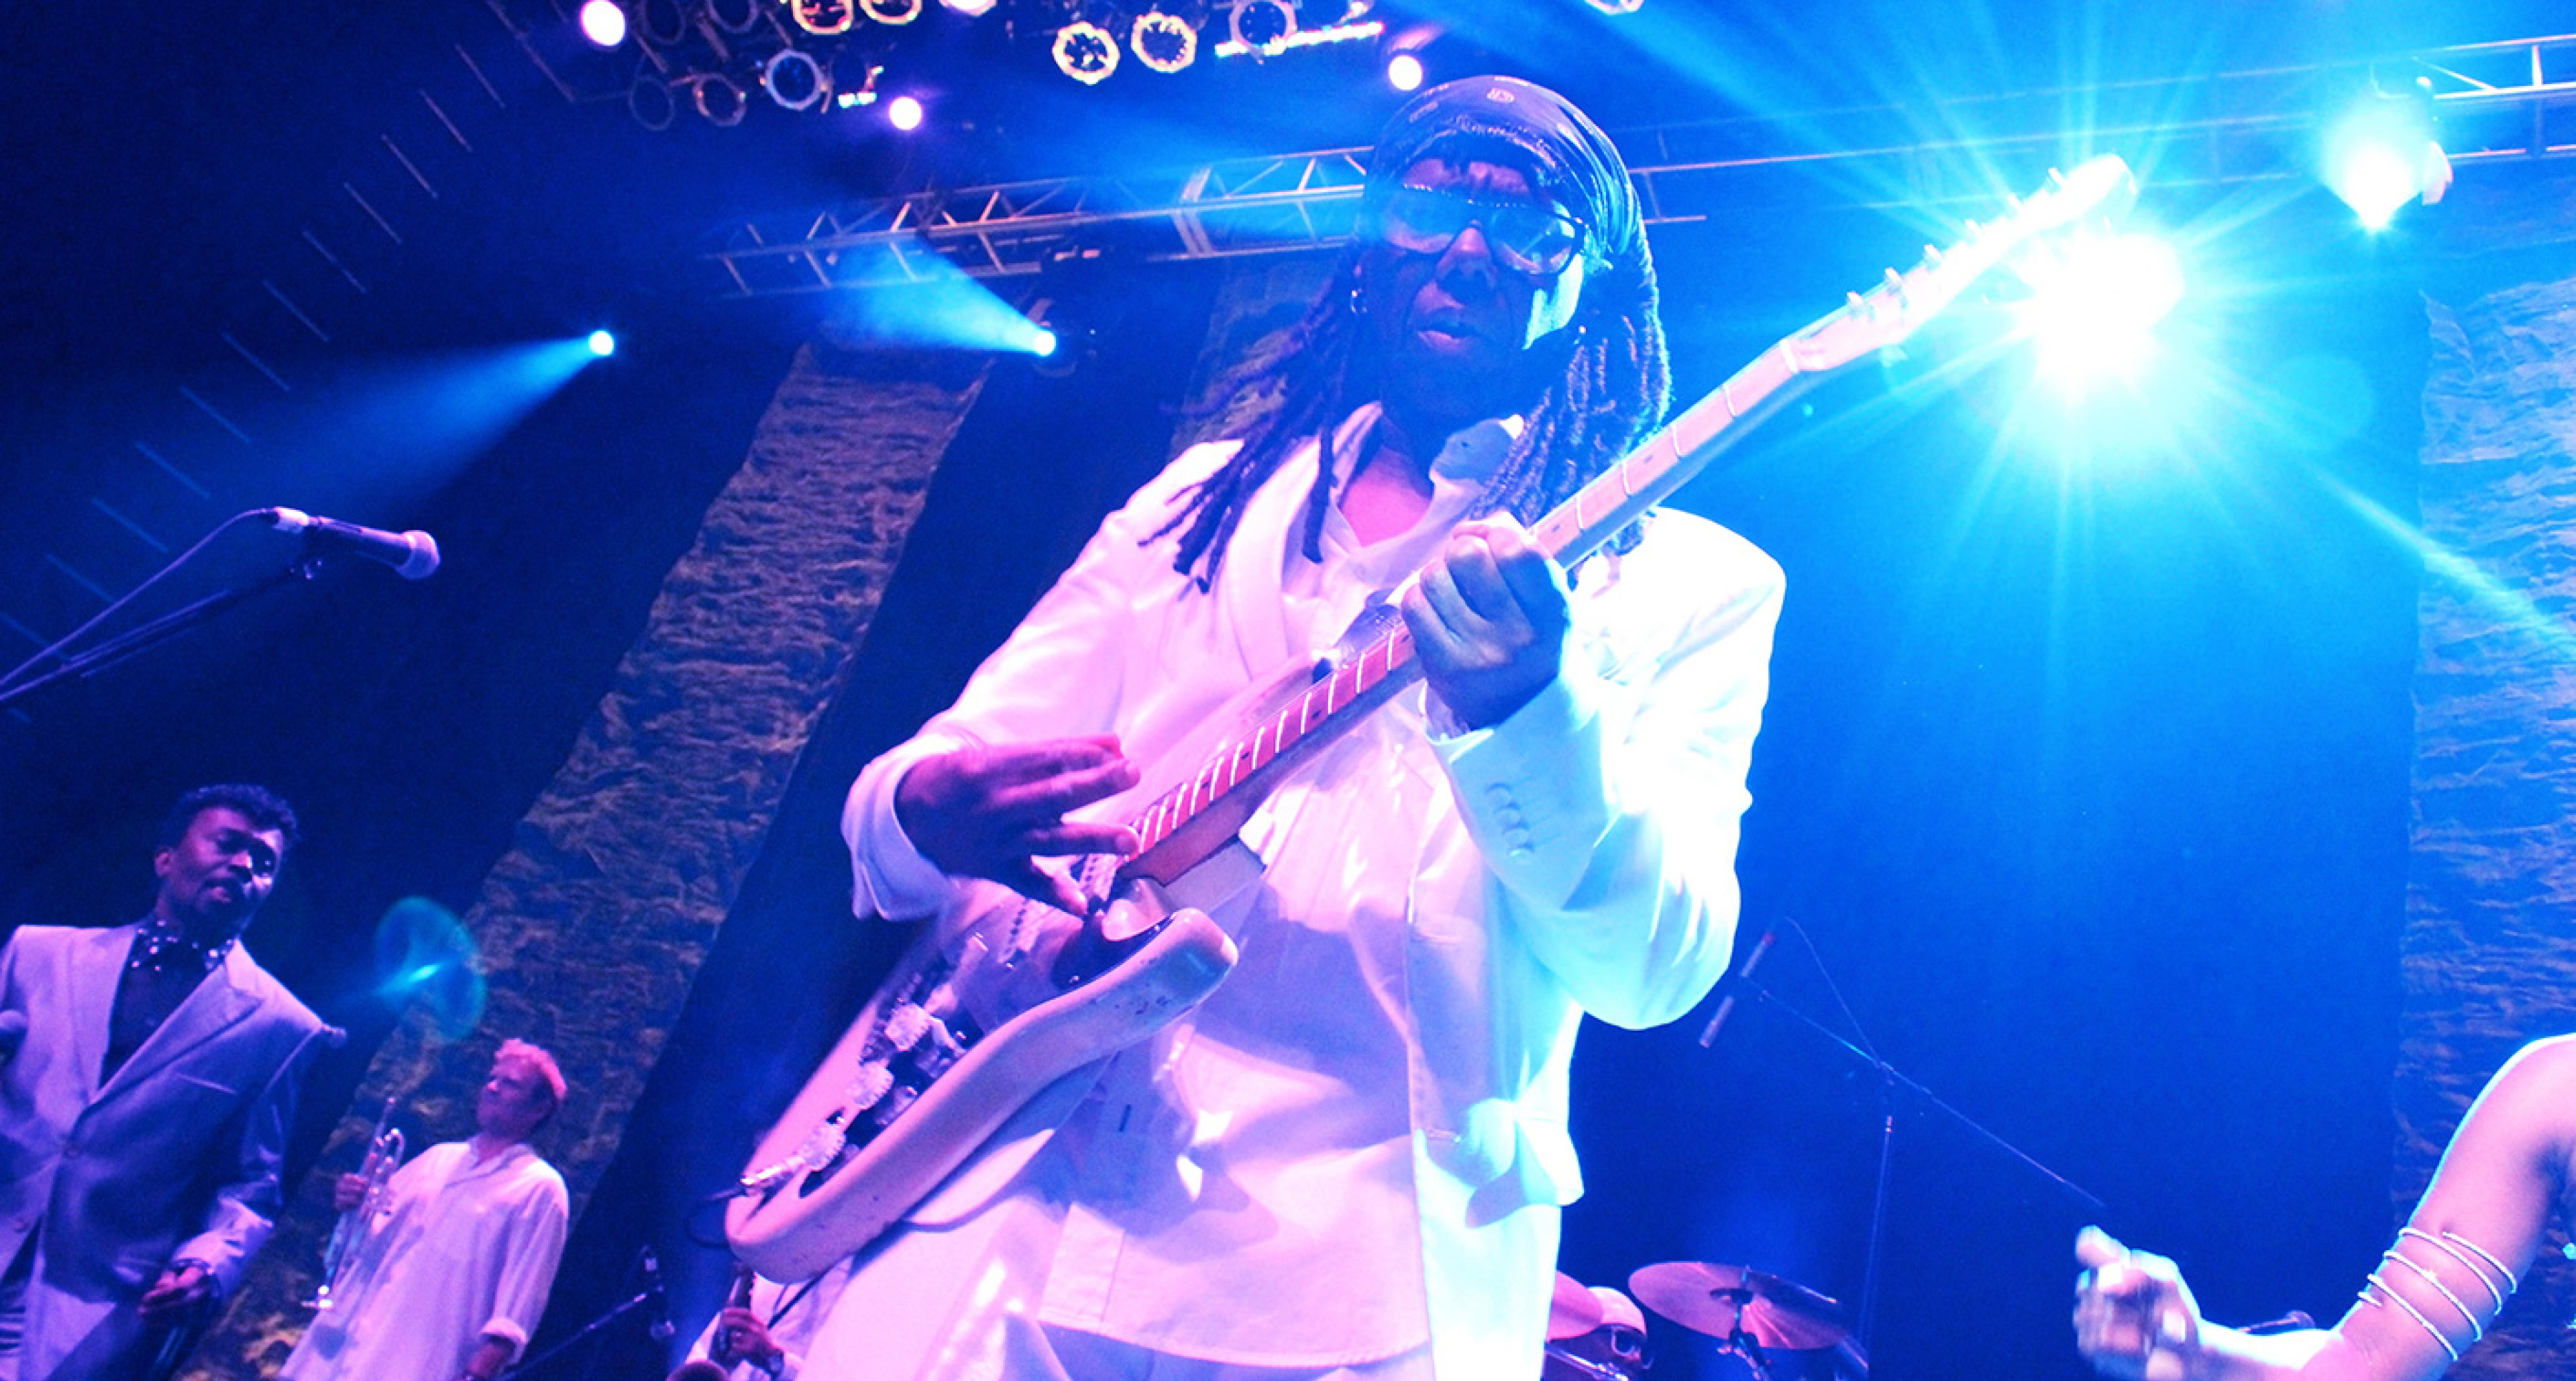 Nile Rodgers and his famous Stratocaster